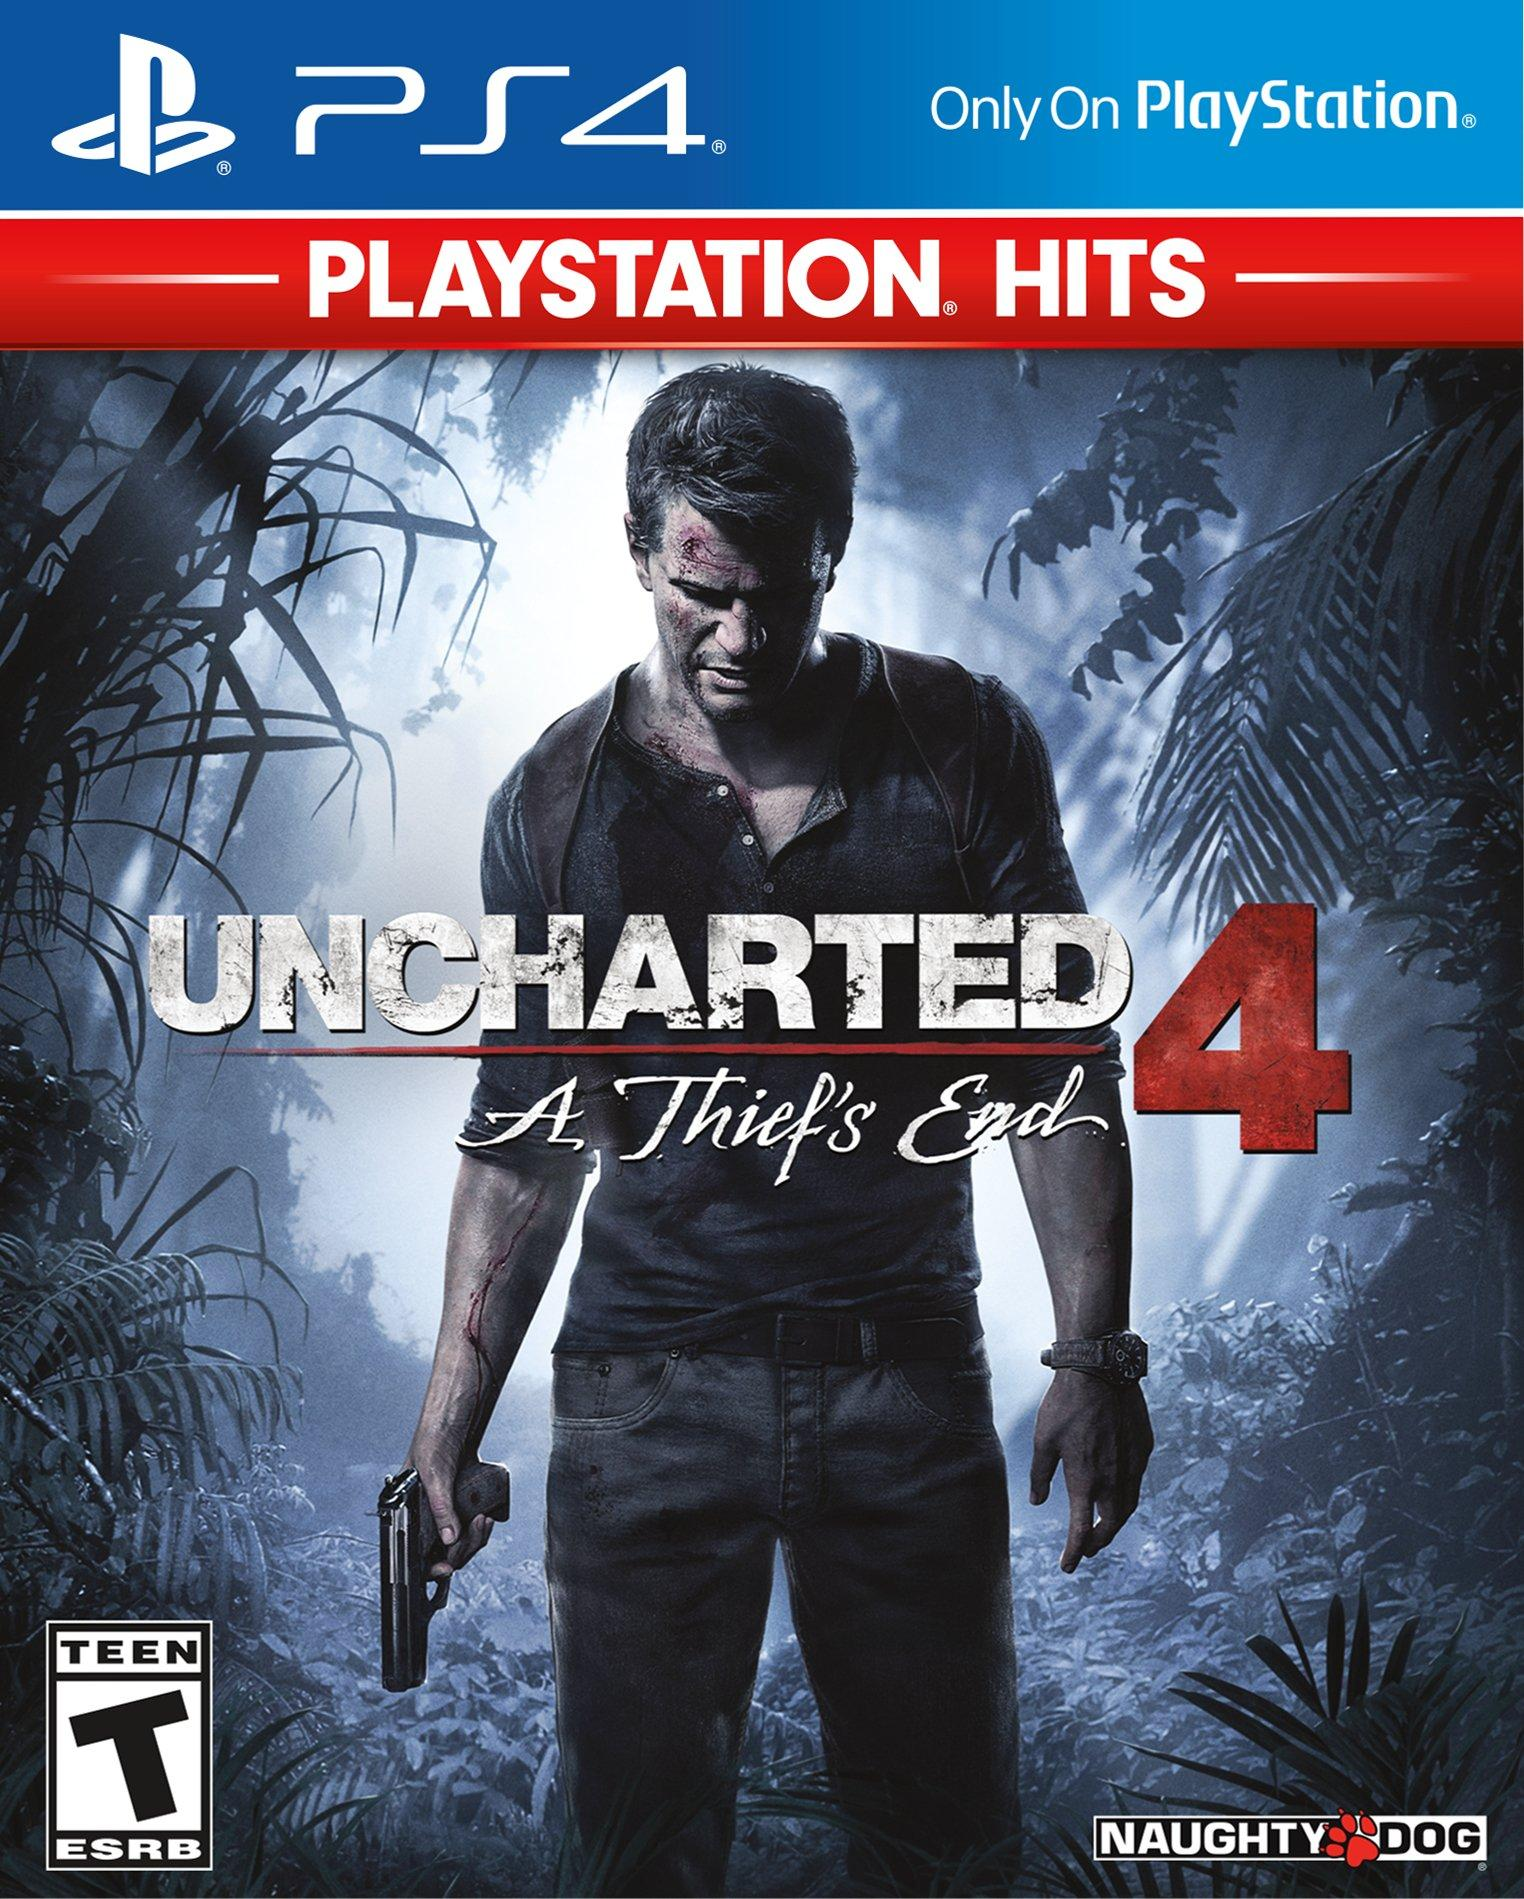 UNCHARTED 4: A Thief's End | PlayStation 4 | GameStop